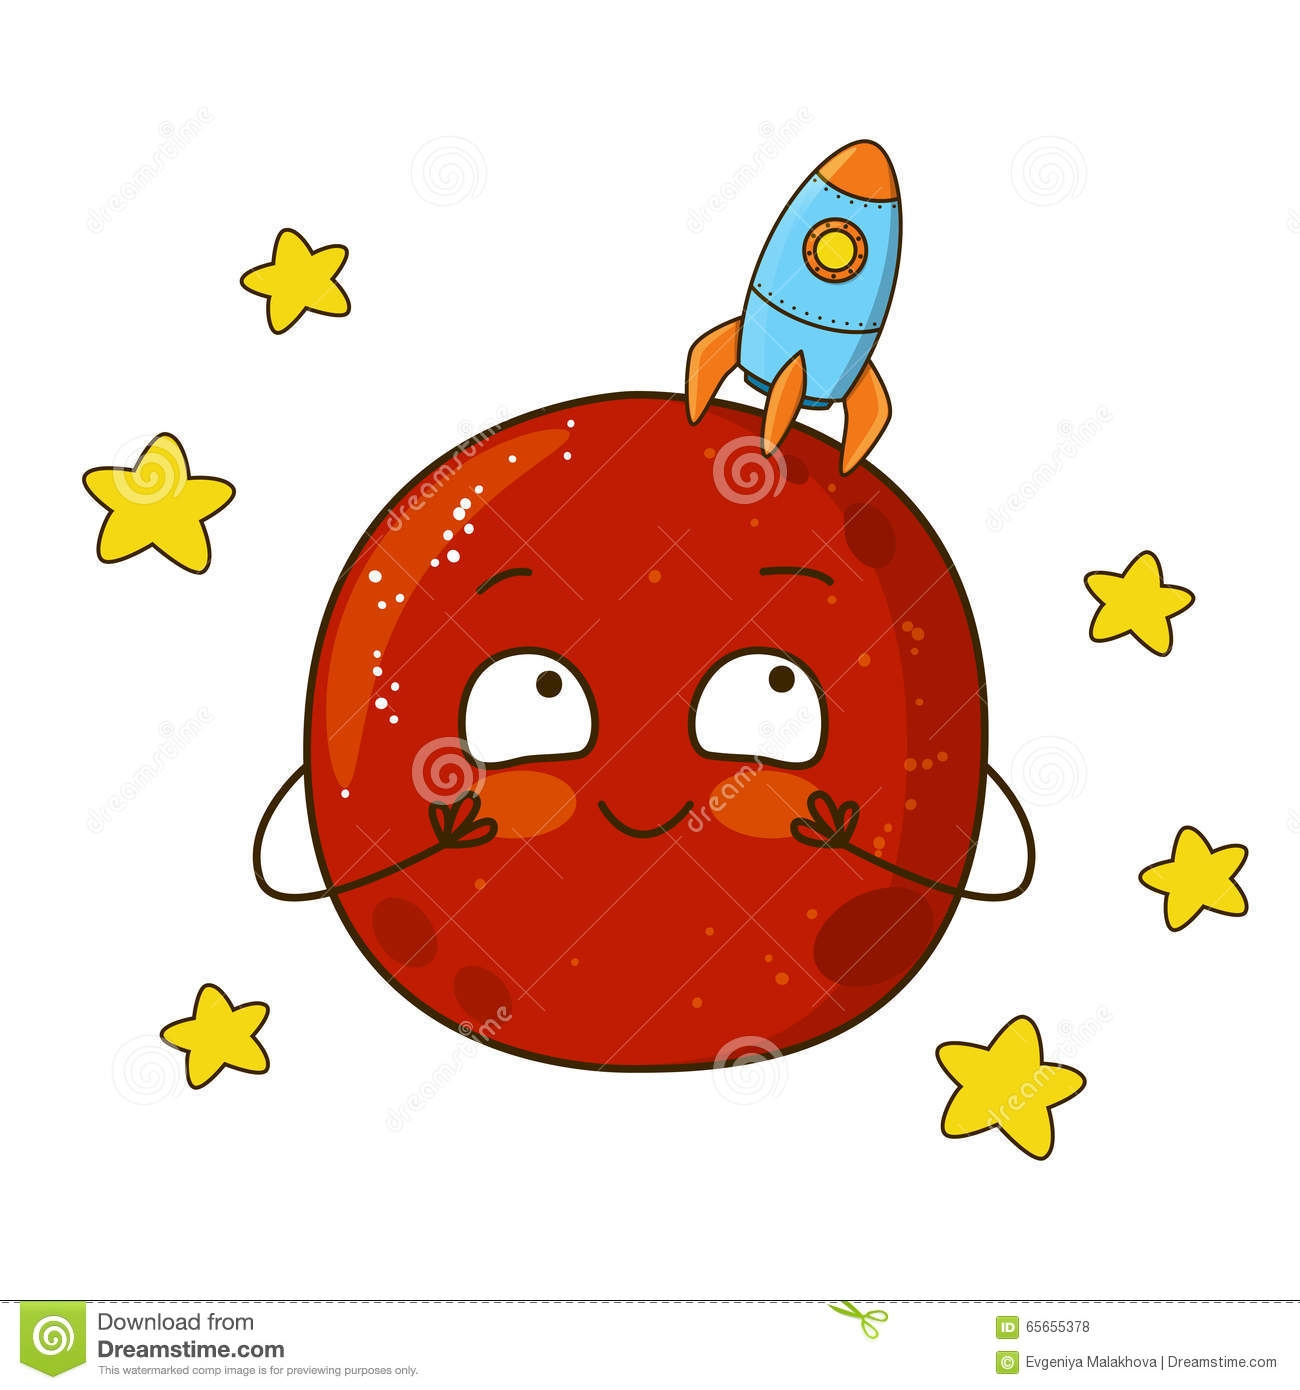 Mars clipart. Awesome design digital collection